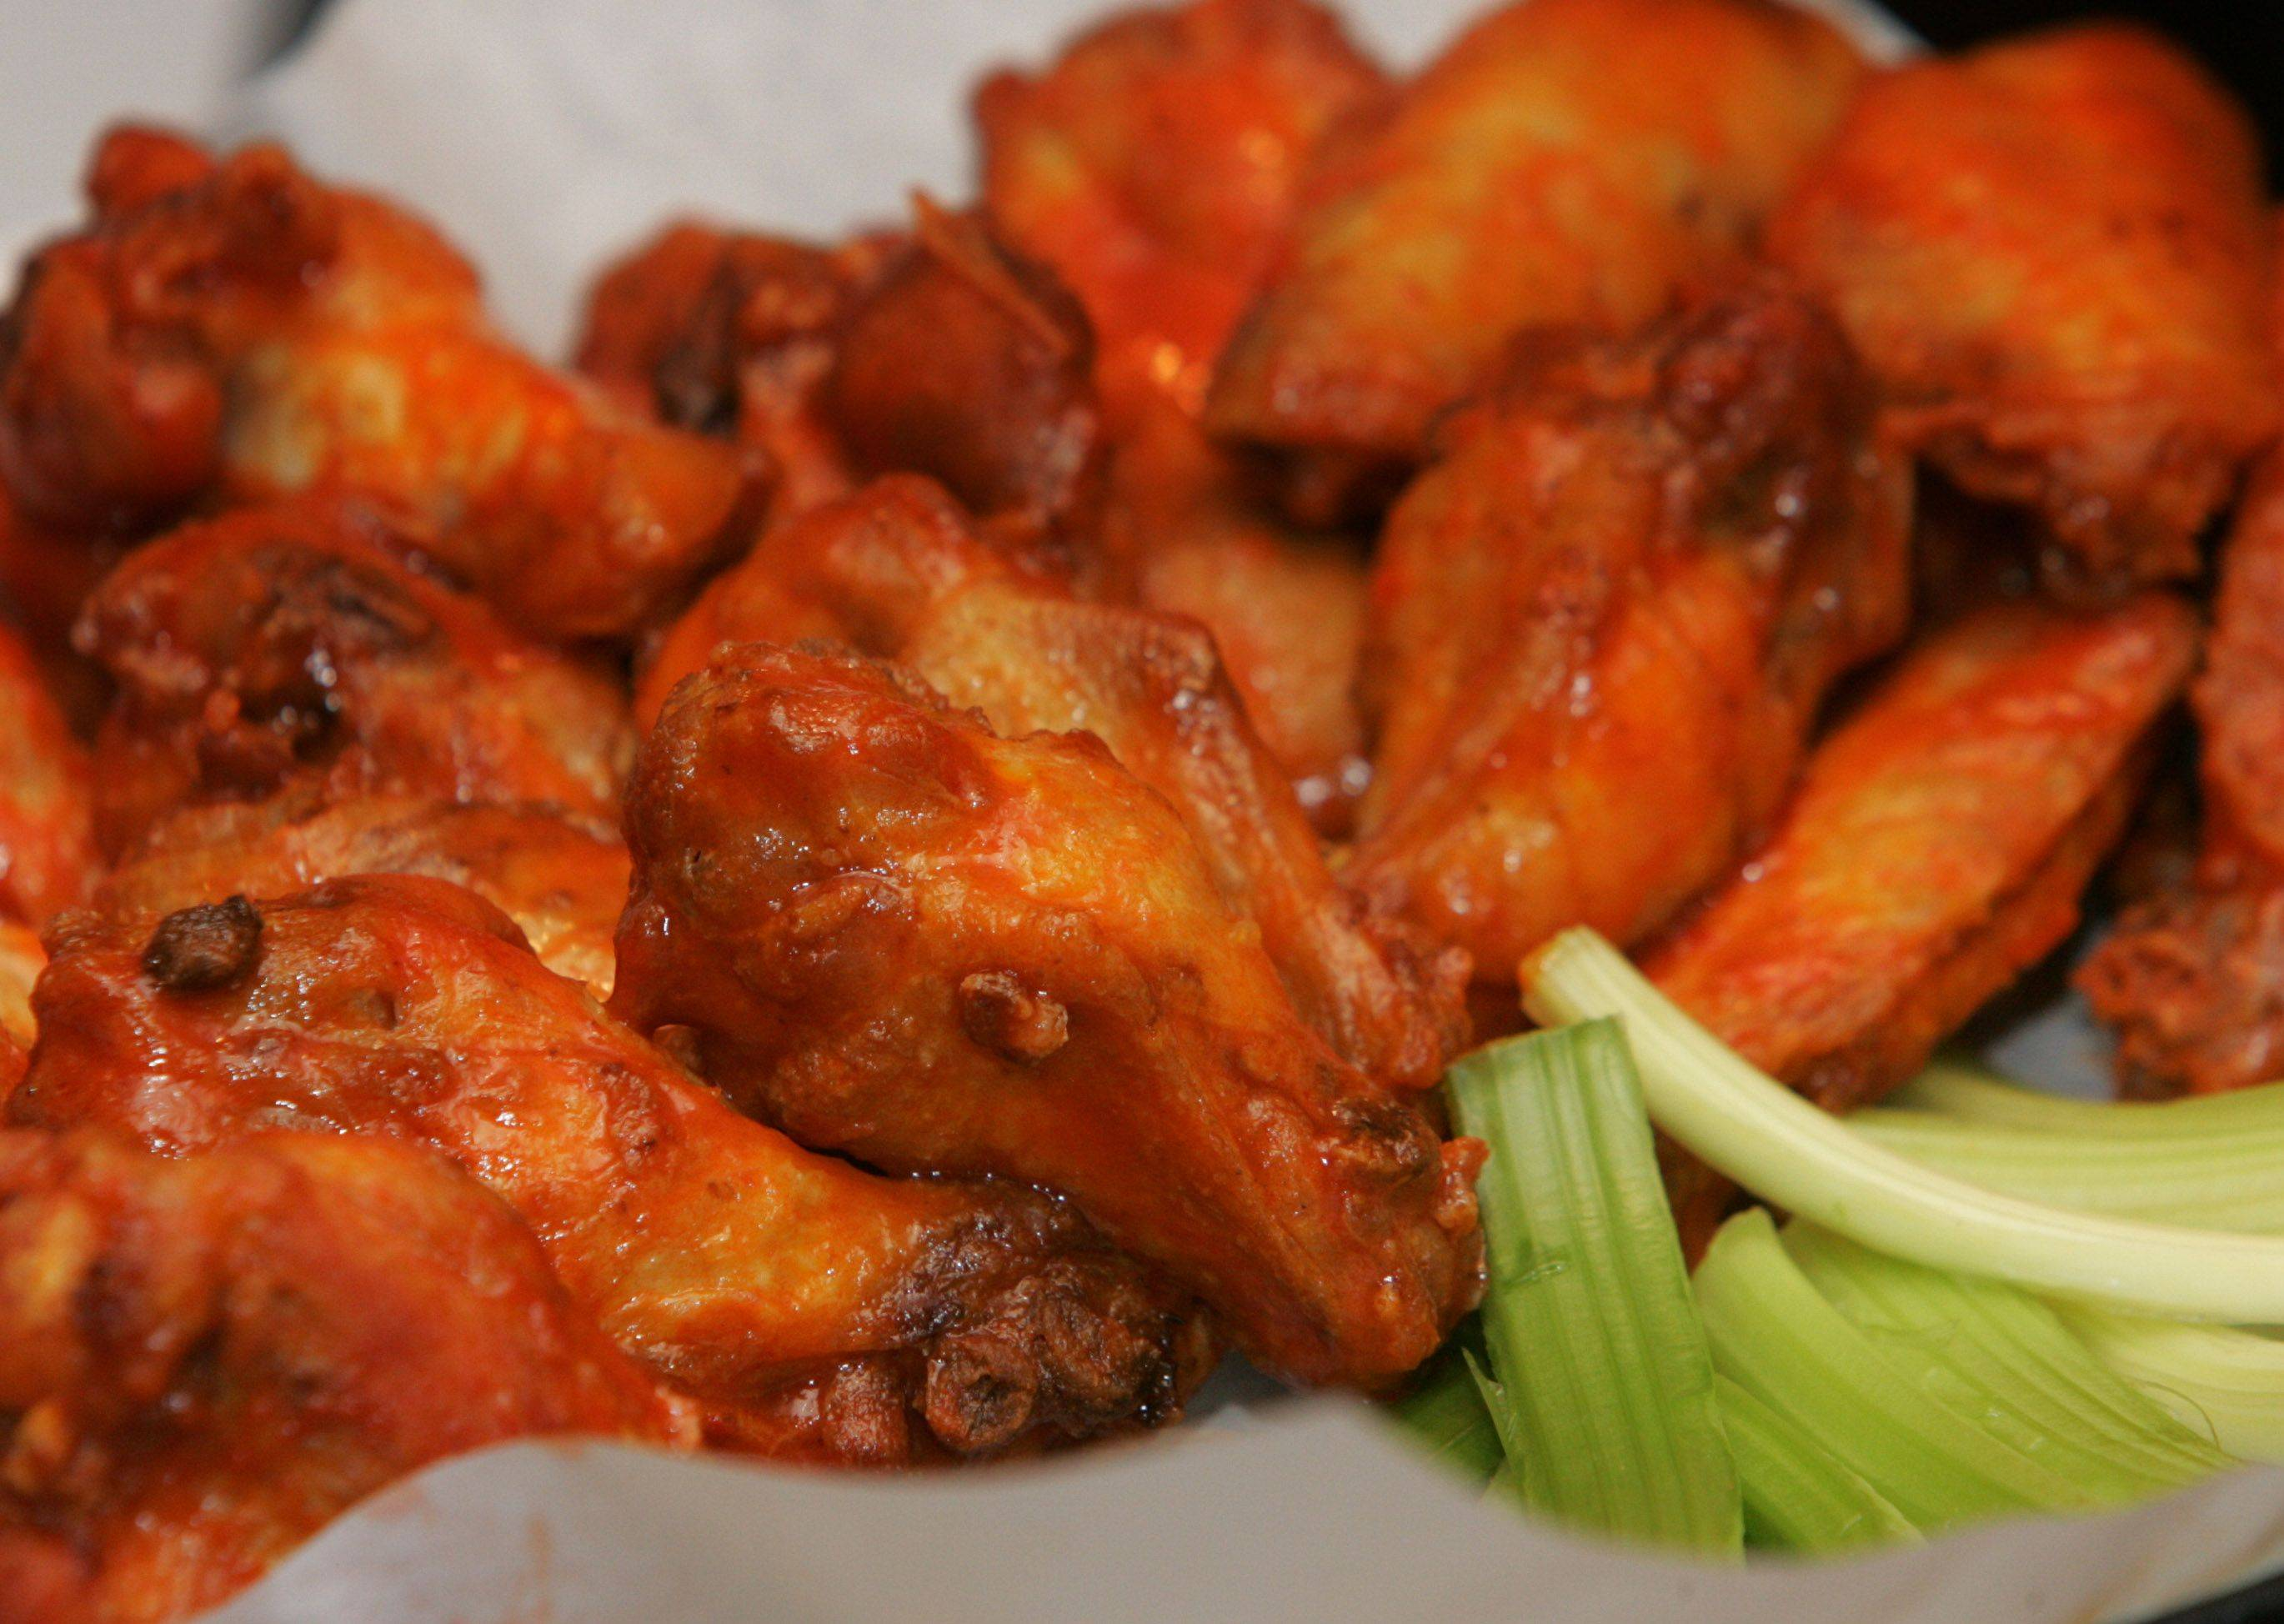 Sideouts' Super Bowl buffet will include Buffalo wings and other football favorites.